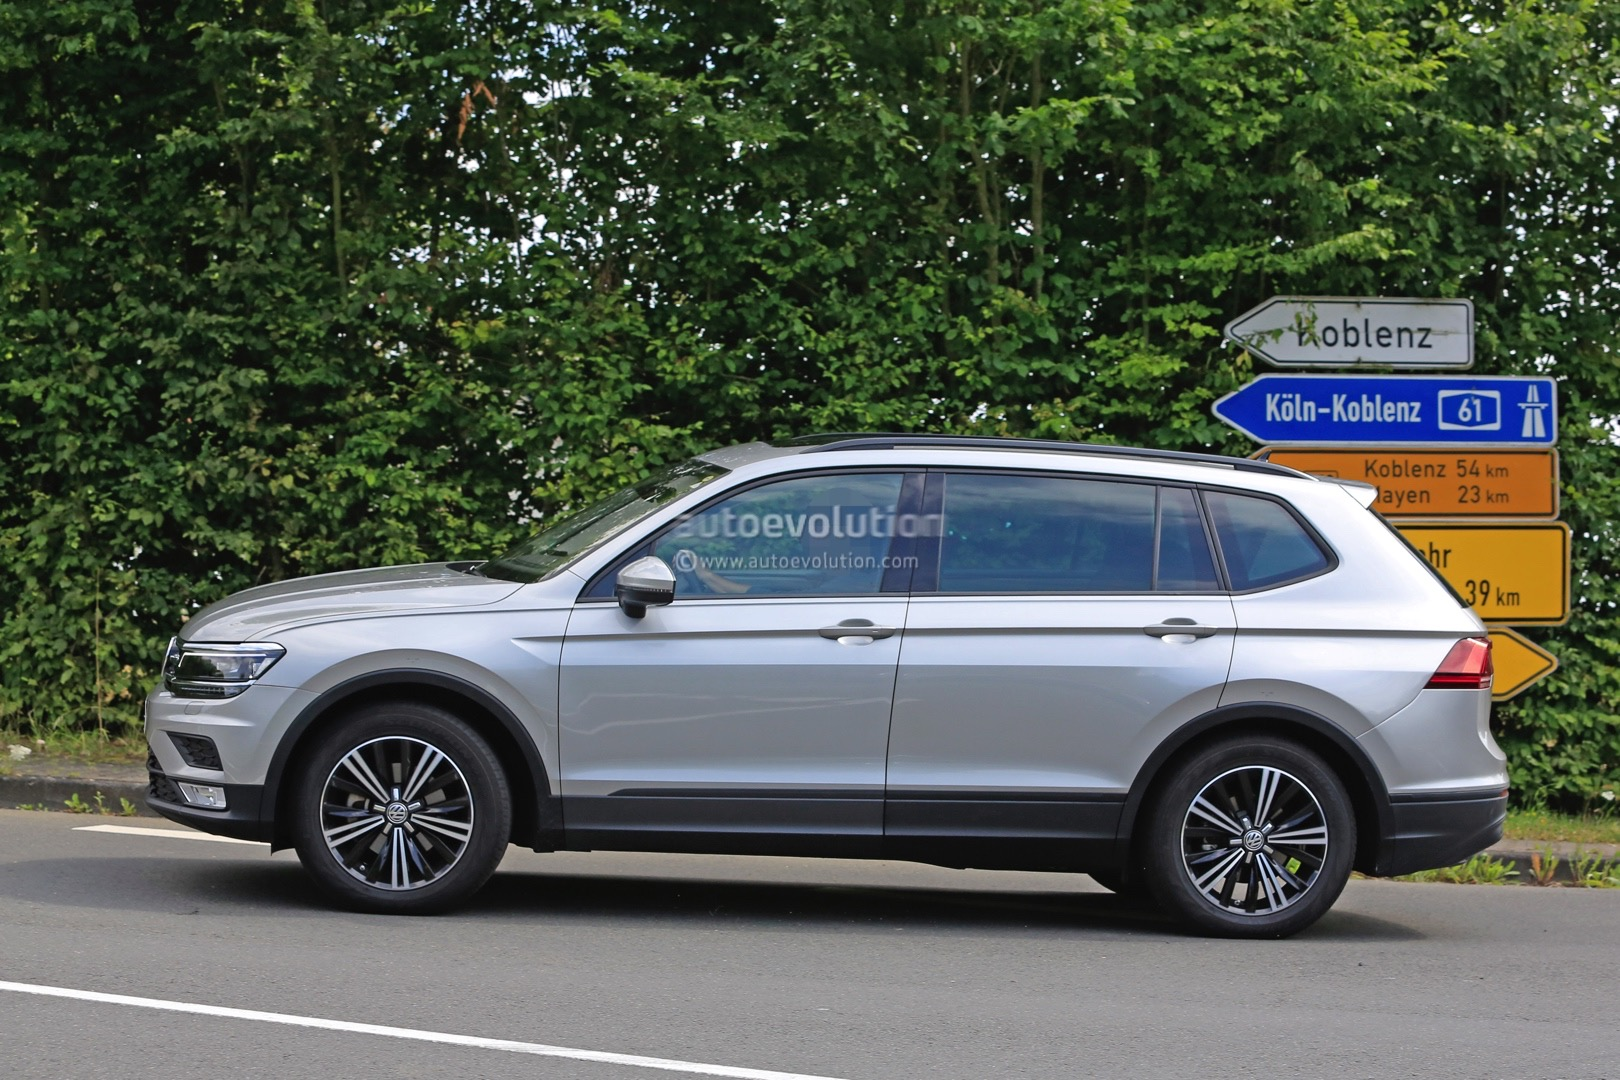 2017 Volkswagen Tiguan XL Spied Without Camouflage, Looks Exactly As Expected - autoevolution